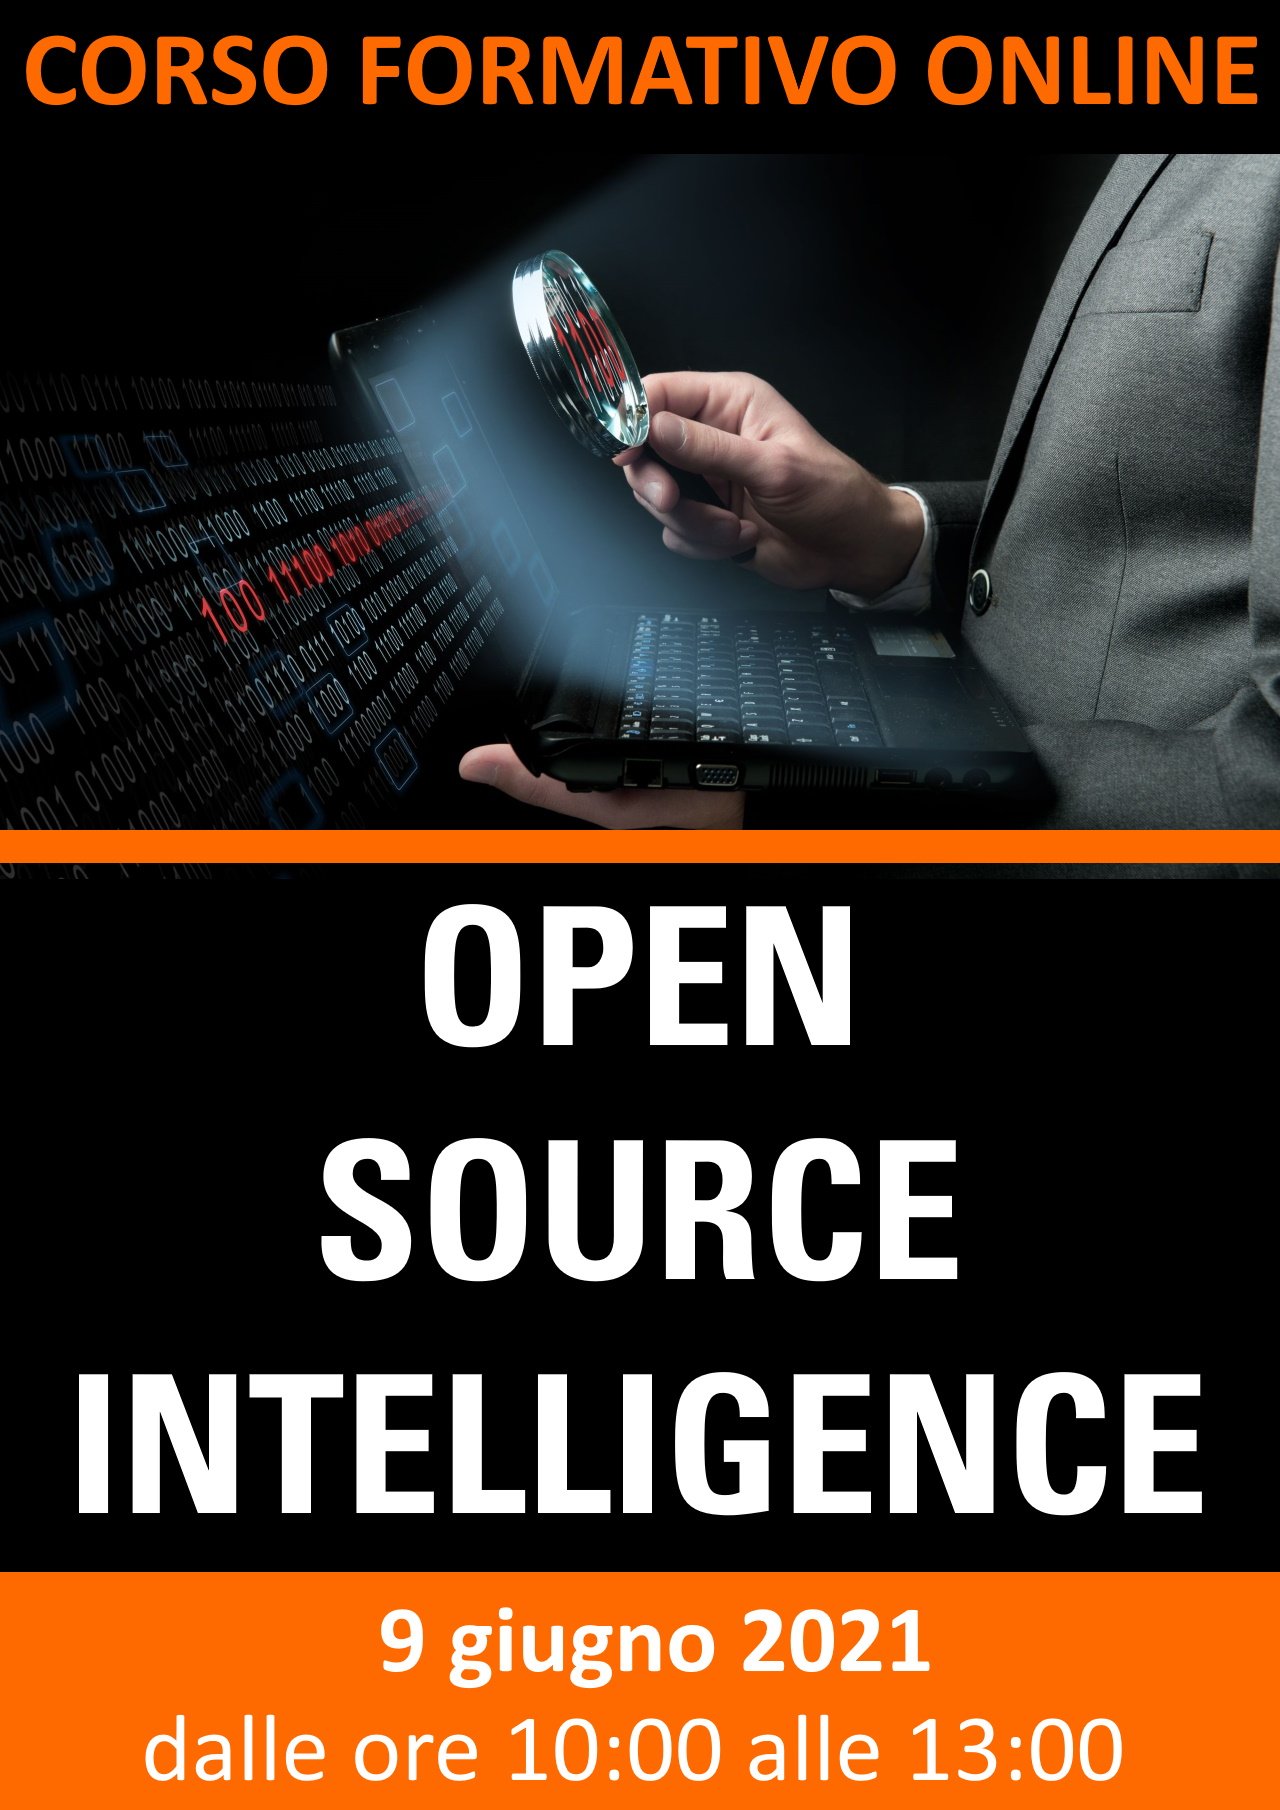 Corso formativo online: OSINT - OPEN SOURCE INTELLIGENCE